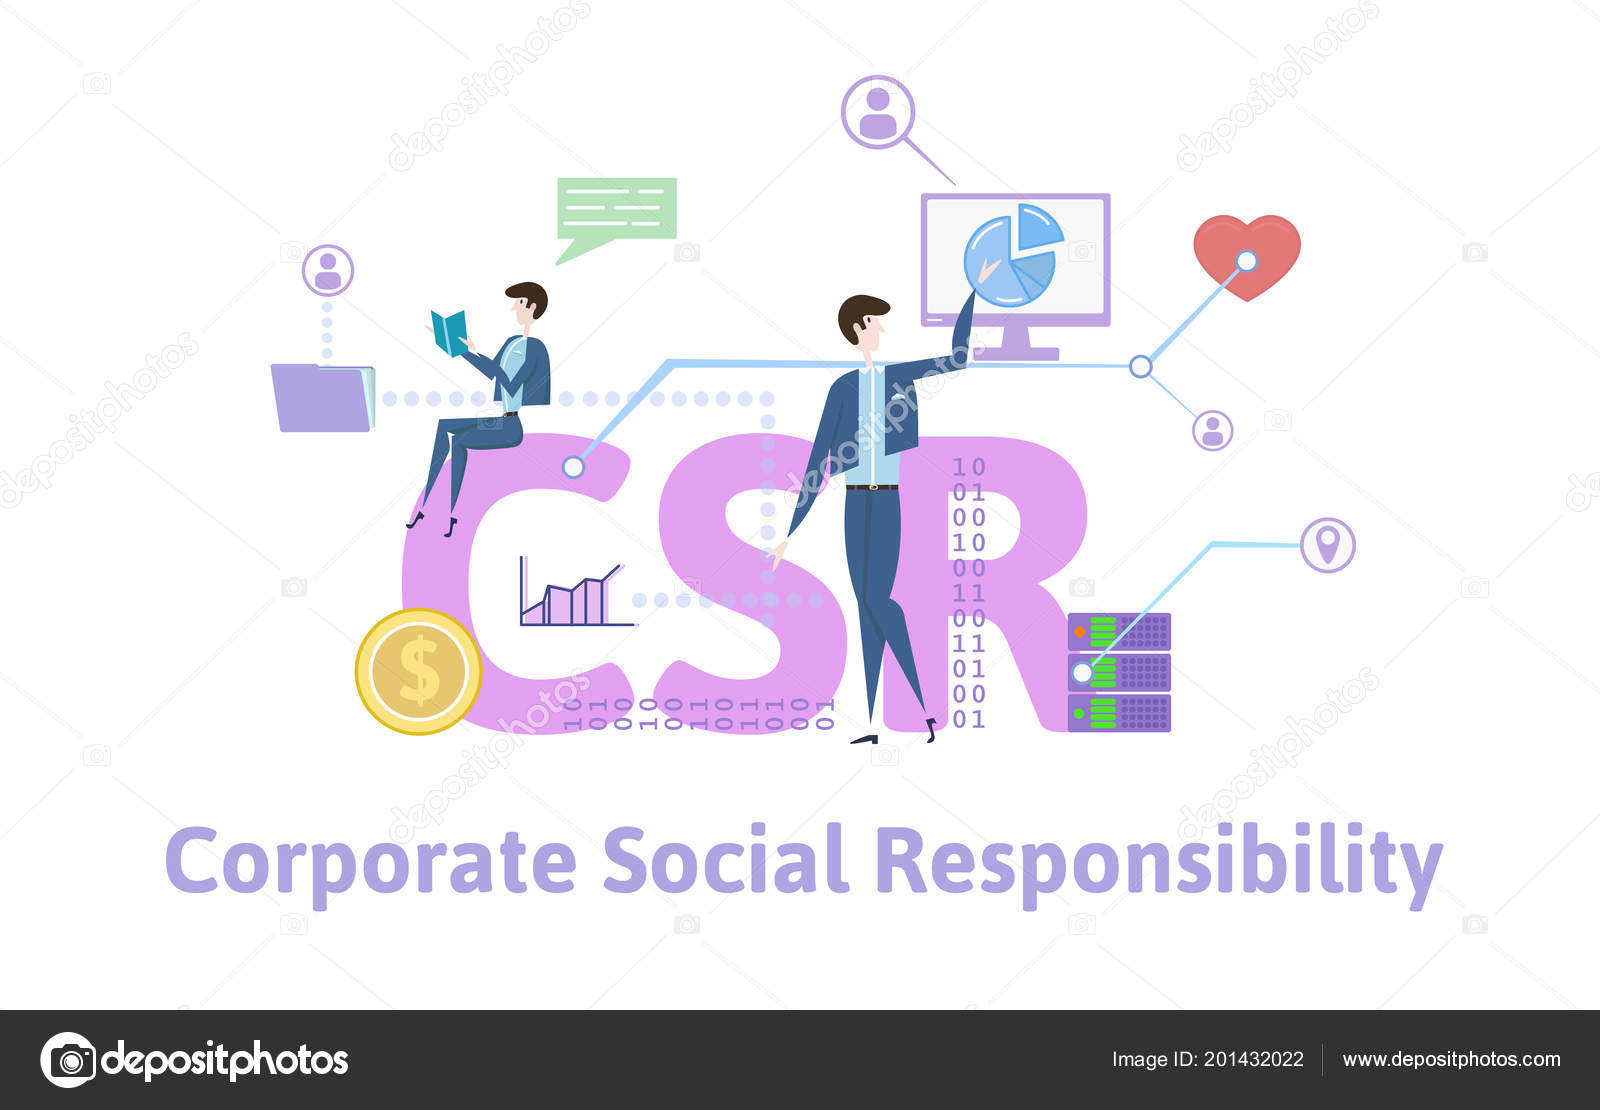 csr, corporate social responsibility. concept table with keywords